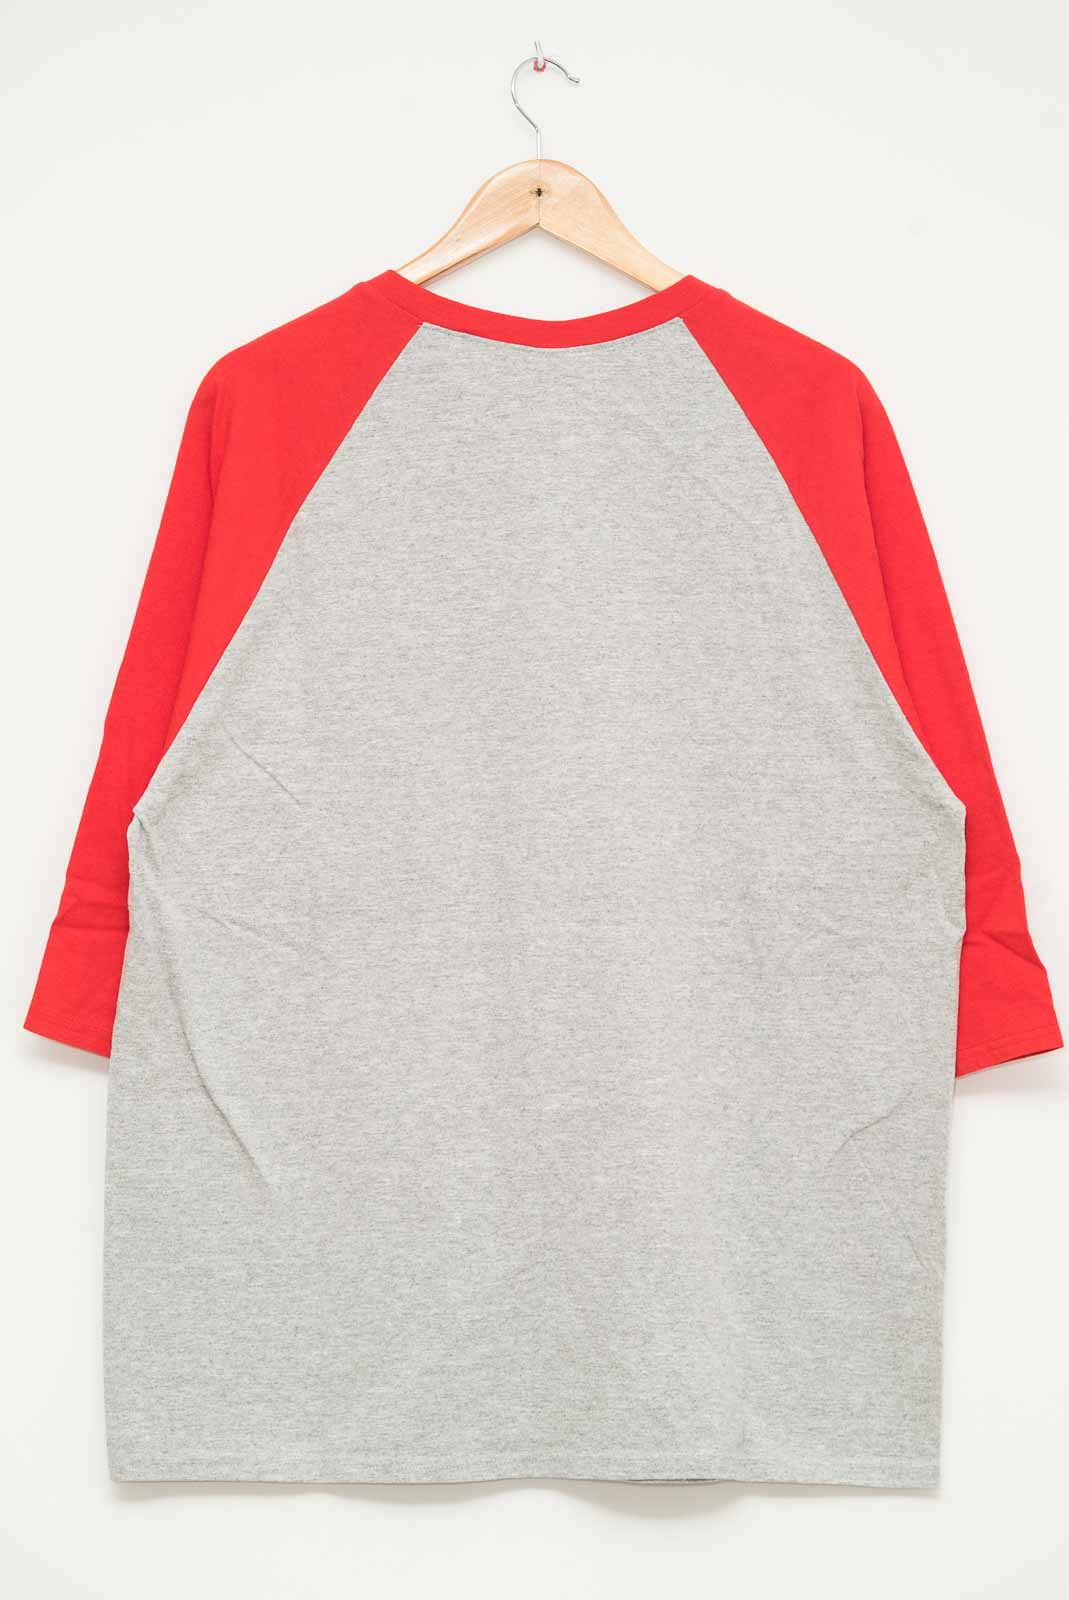 excreament-vintage-clothes-second-hand-nike-tacchini-t-shirt-191115-59